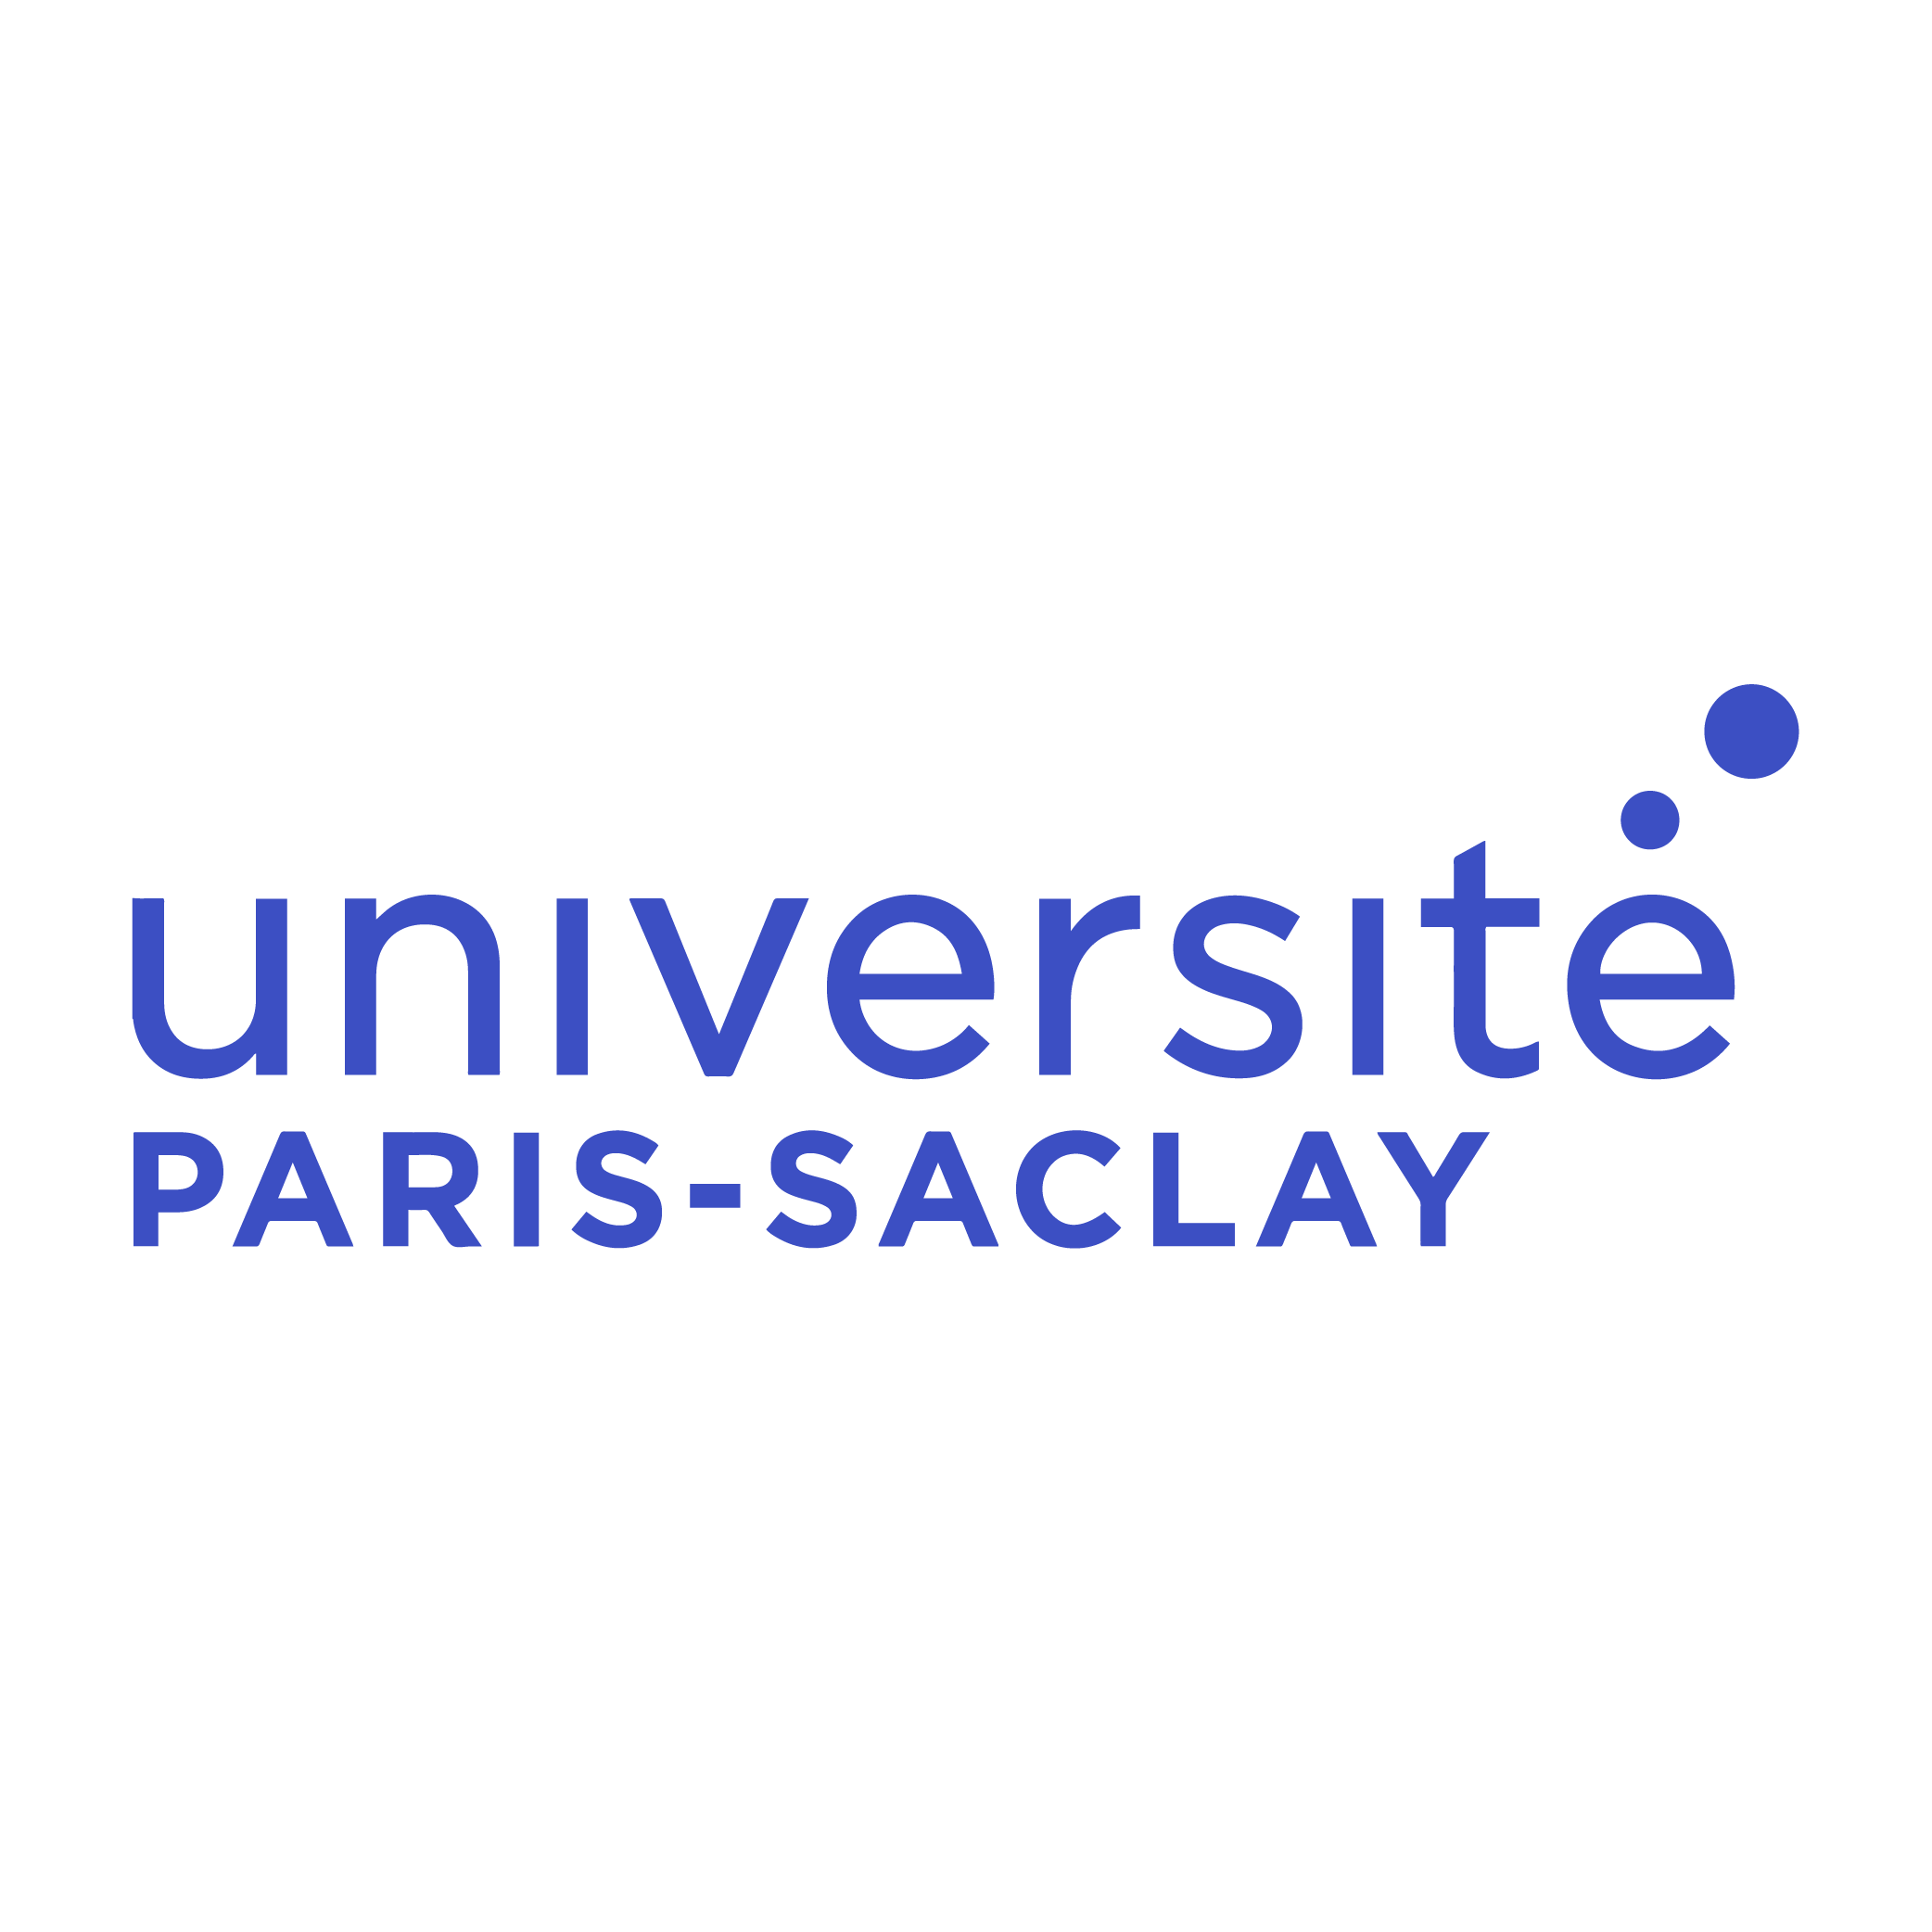 logo de l'université de Paris-saclay